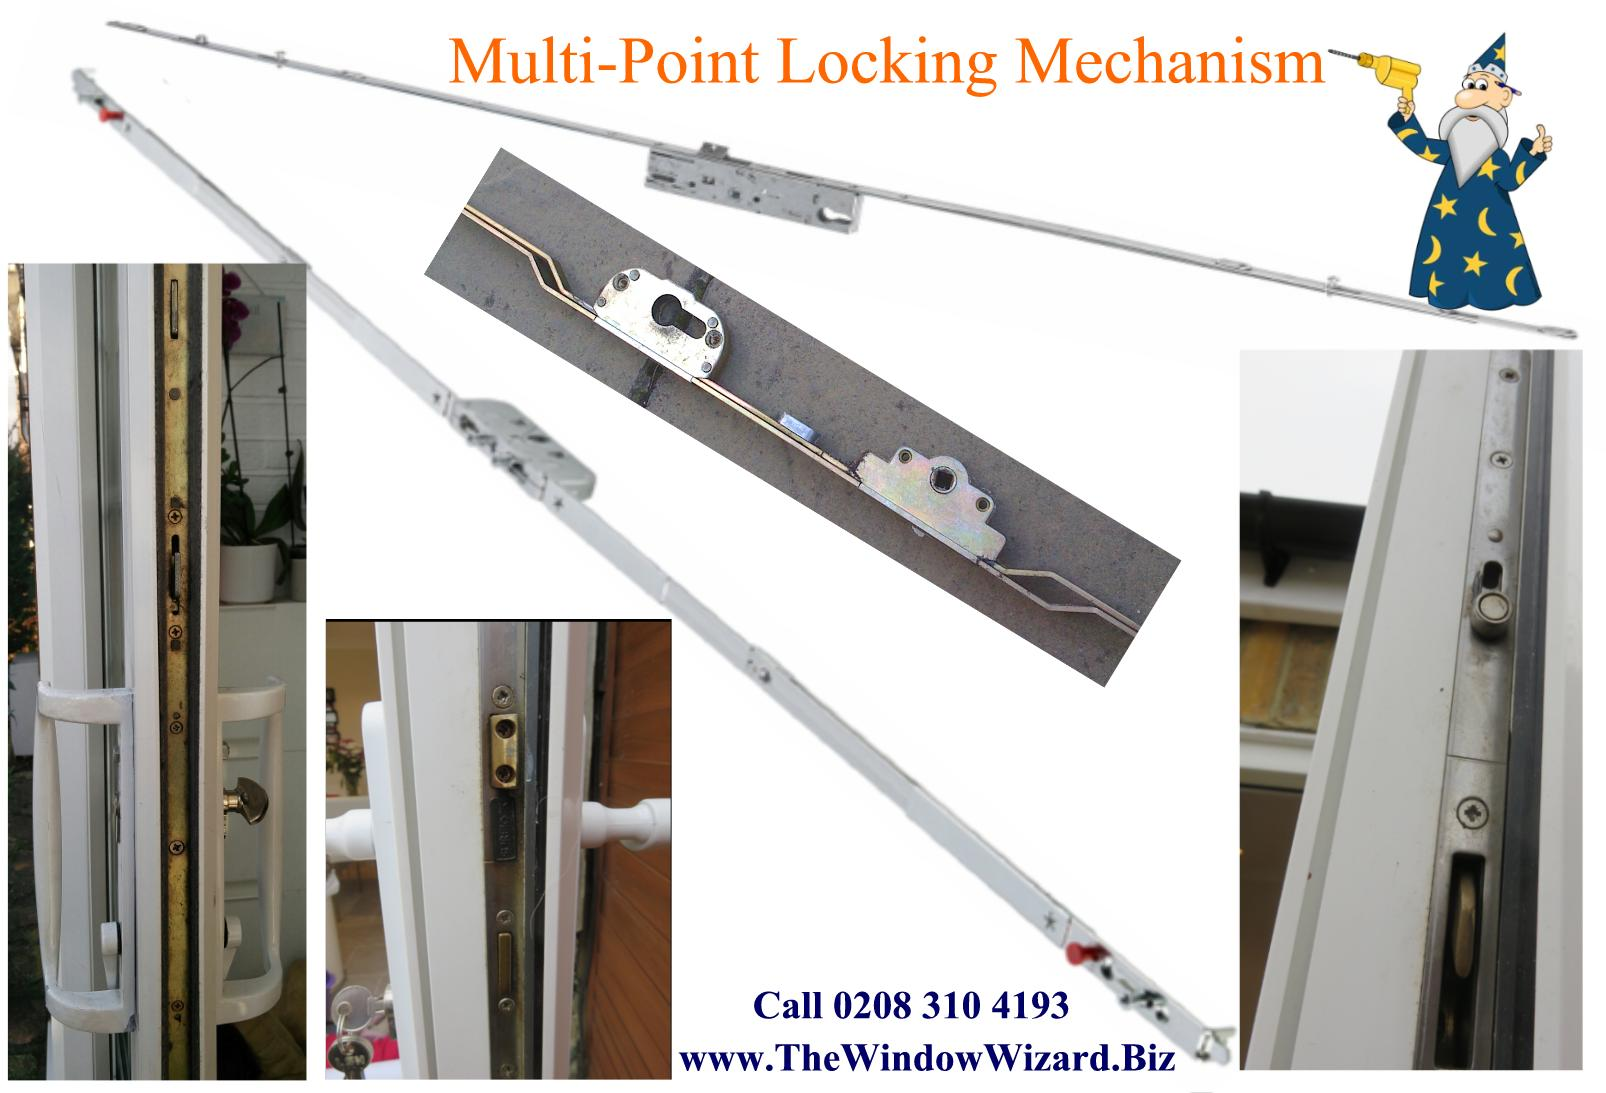 UPVC Door Multi Point Locking Mechanism supplied and fitted